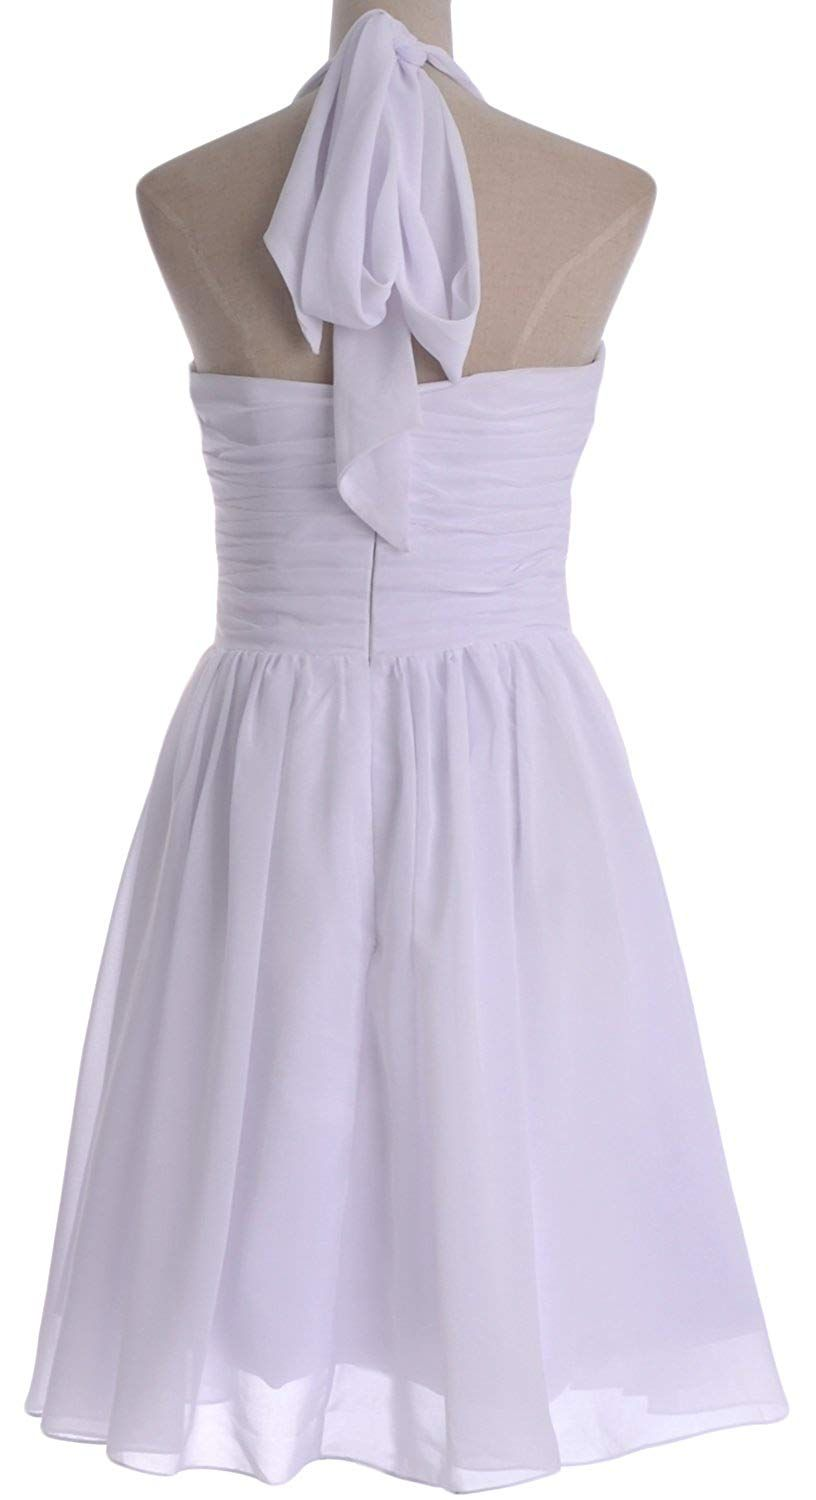 Macloth vintage short bridesmaid dress halter chiffon wedding party